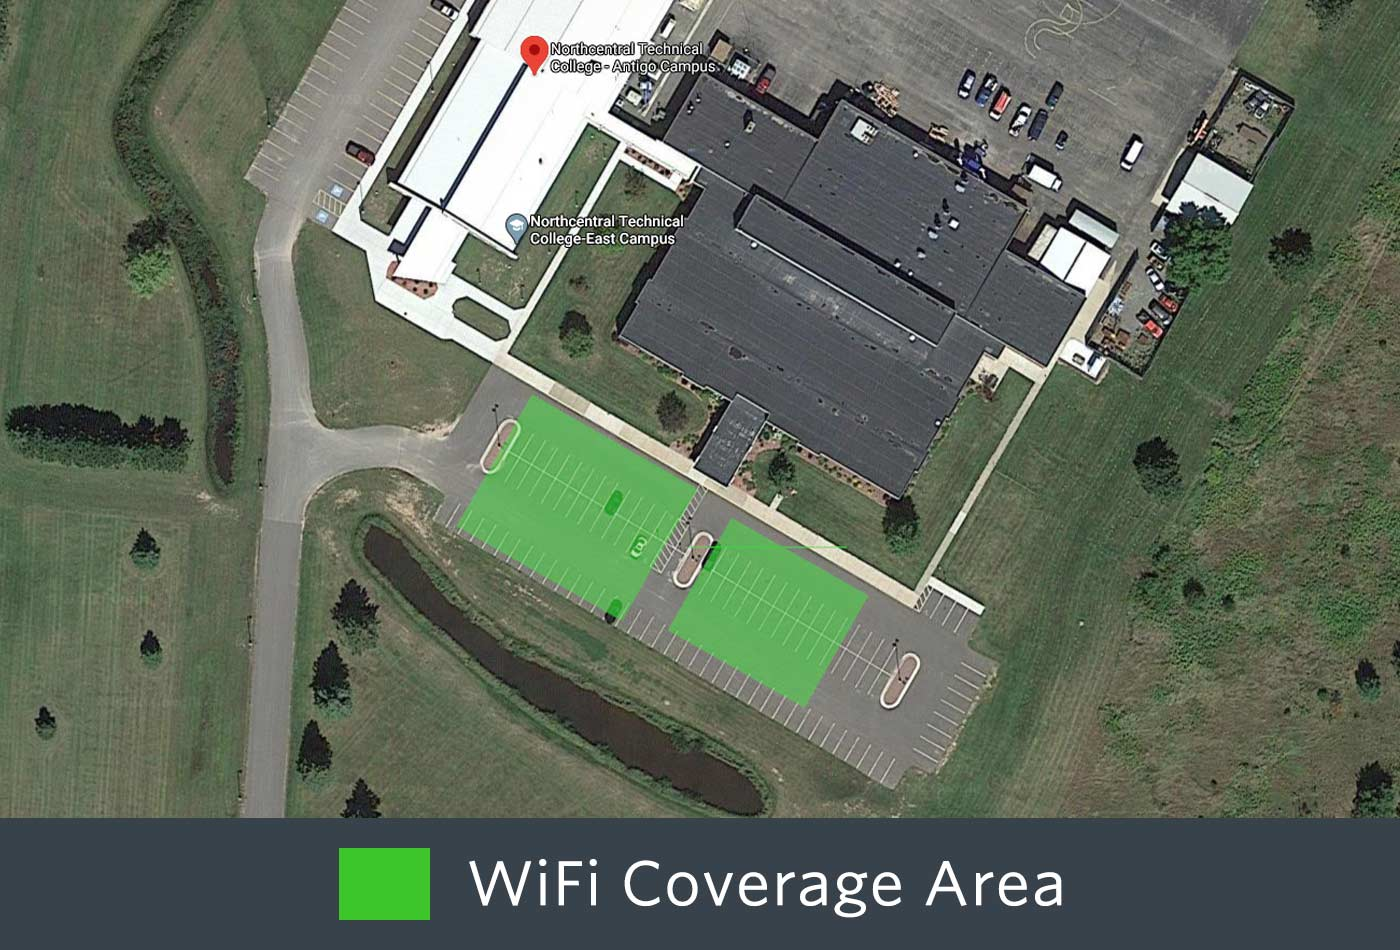 Outdoor WiFi coverage of the front of the Antigo Campus